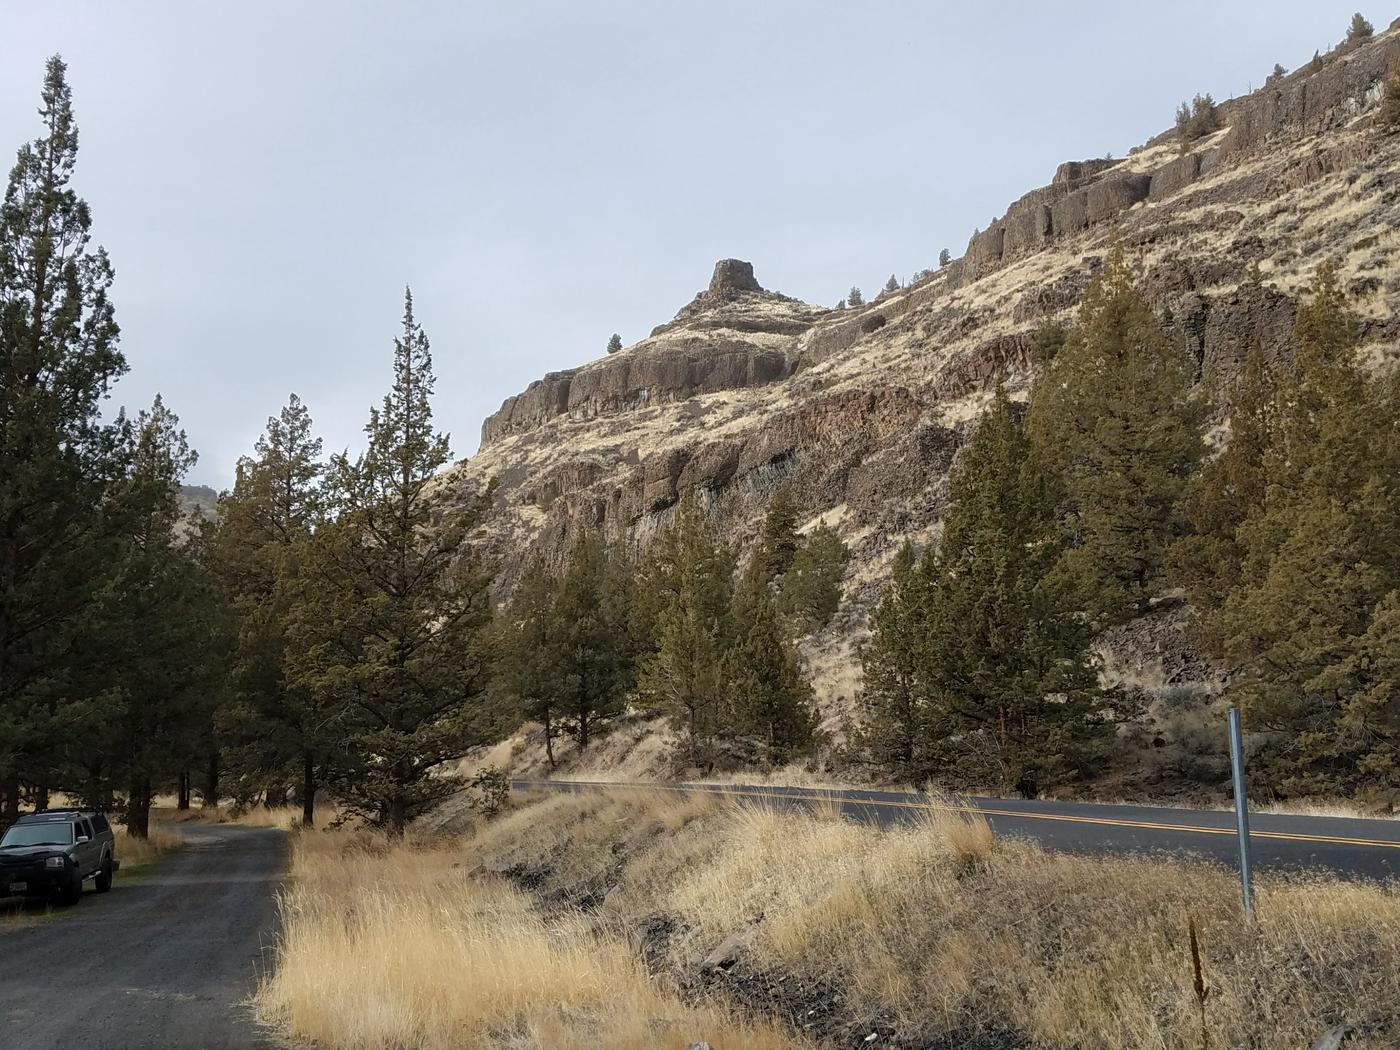 View of Chimney Rock from Post Pile Campground